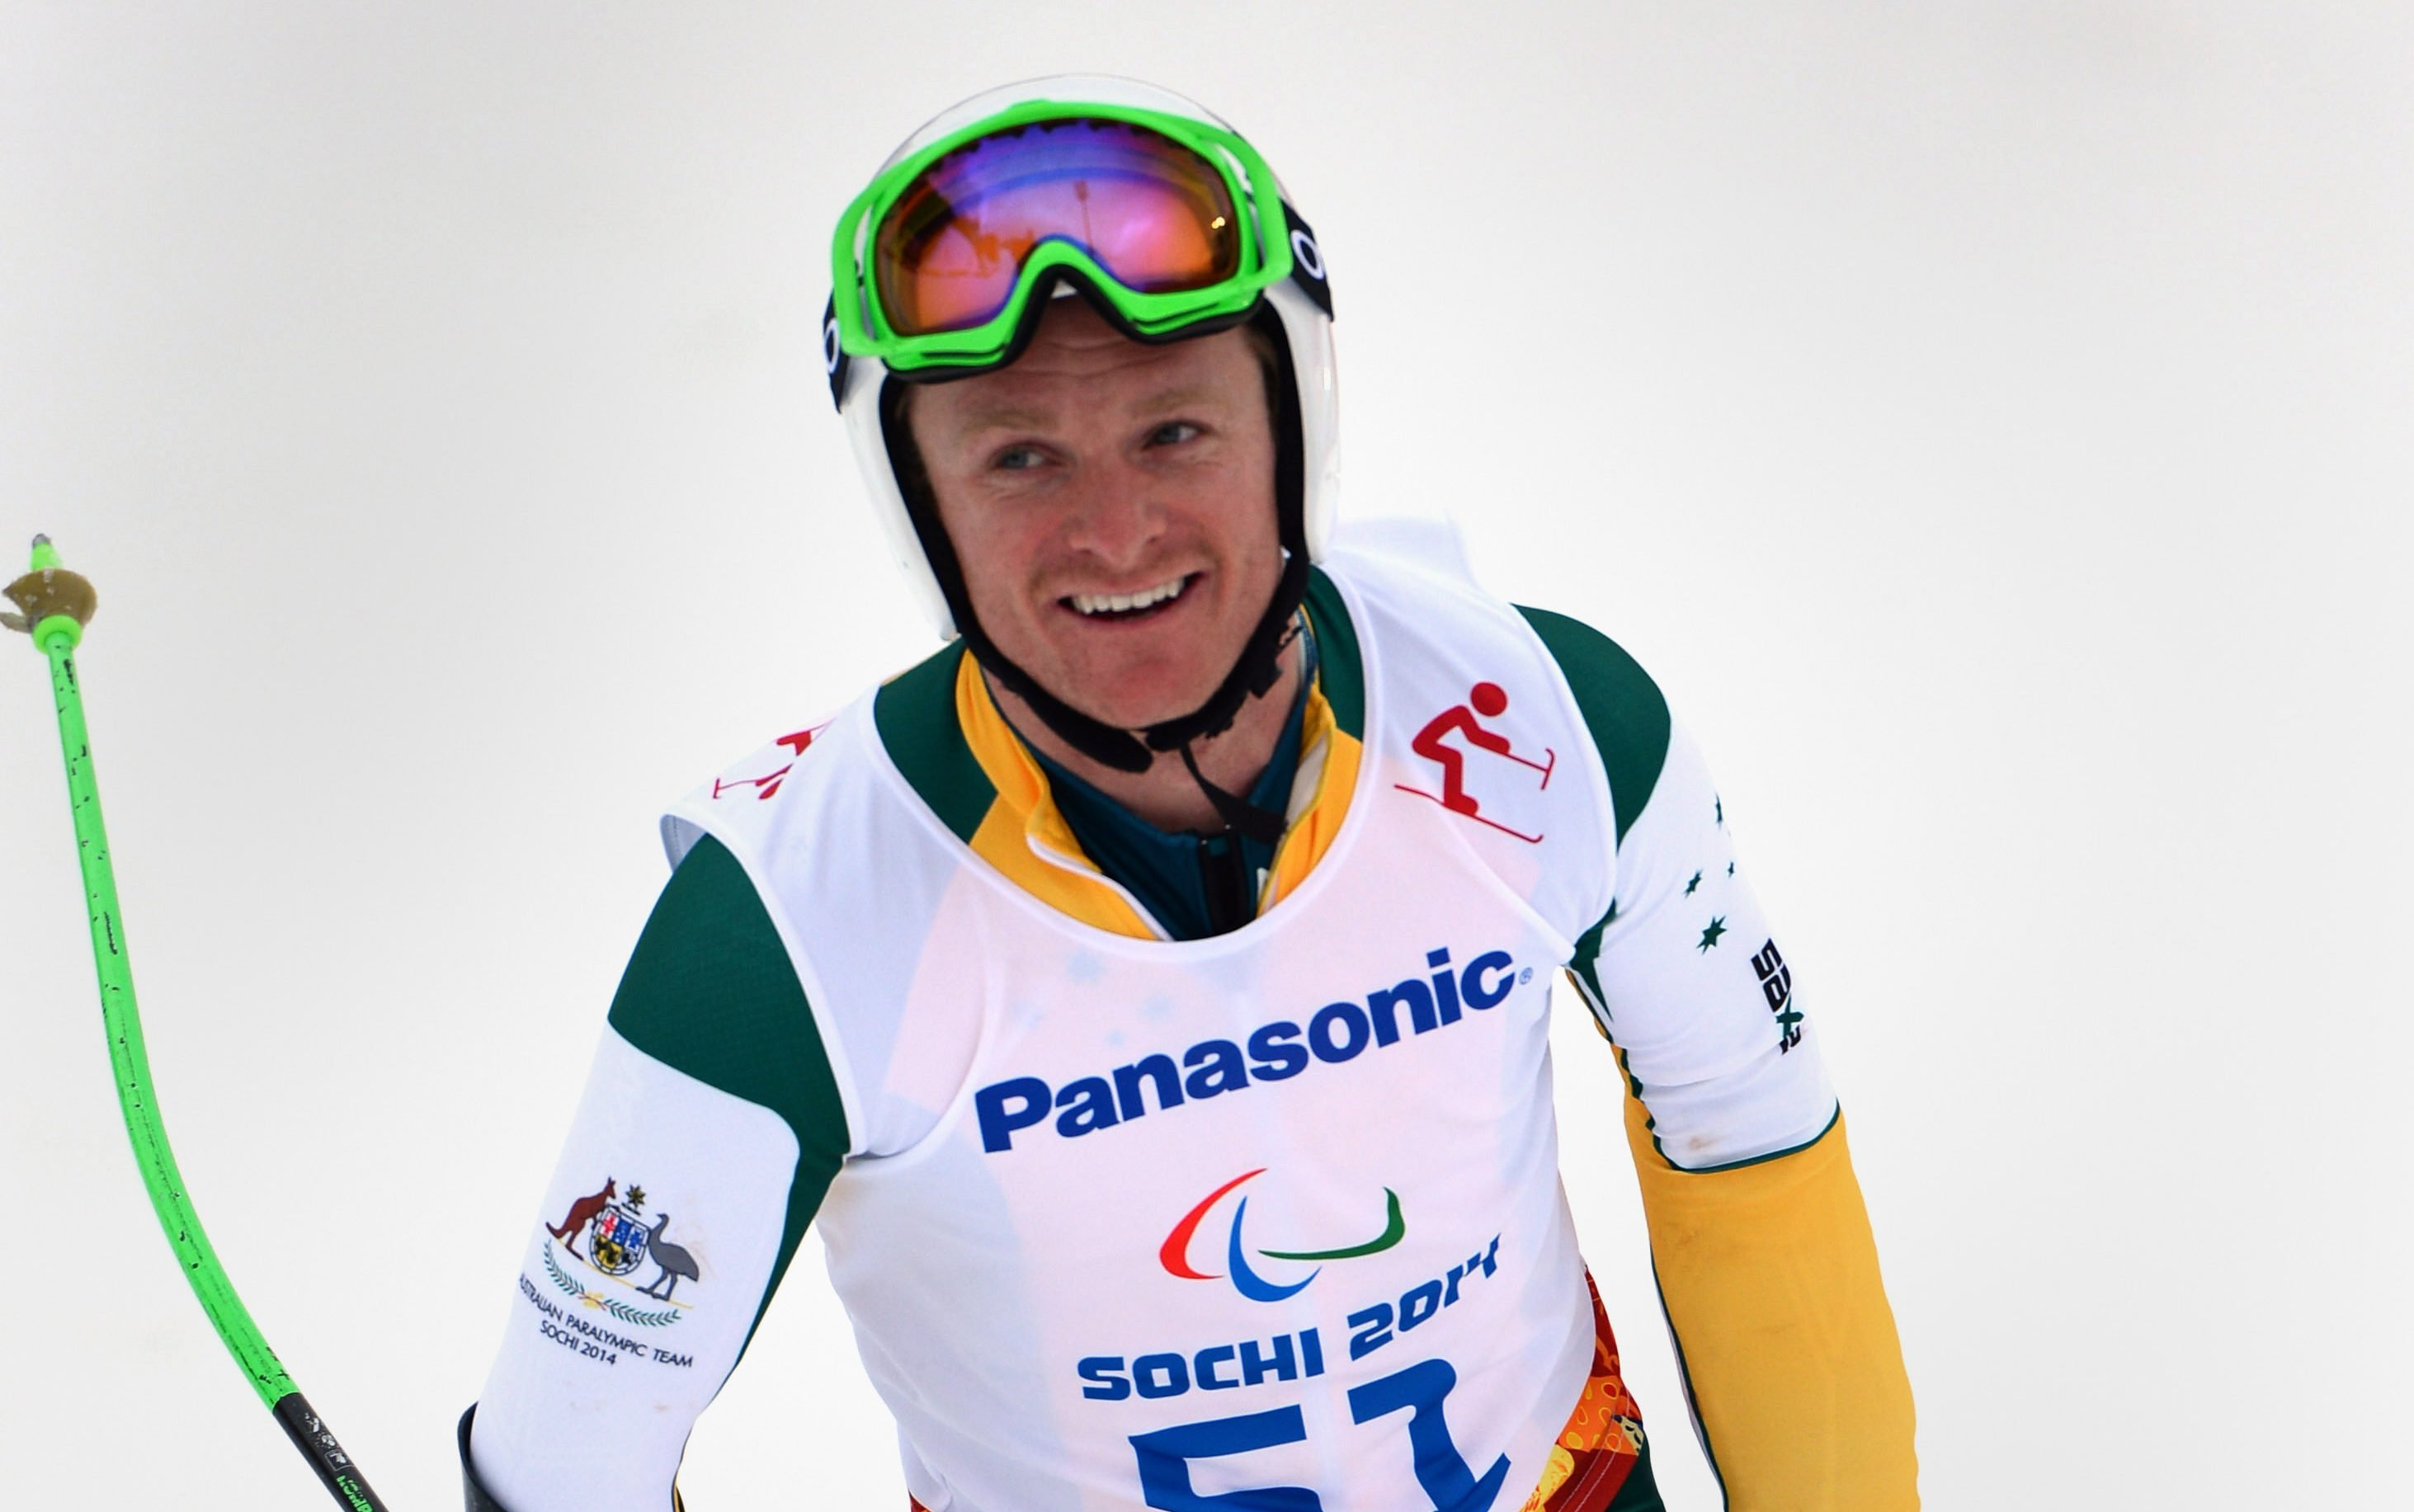 Gourley finishes third in overall World Cup rankings